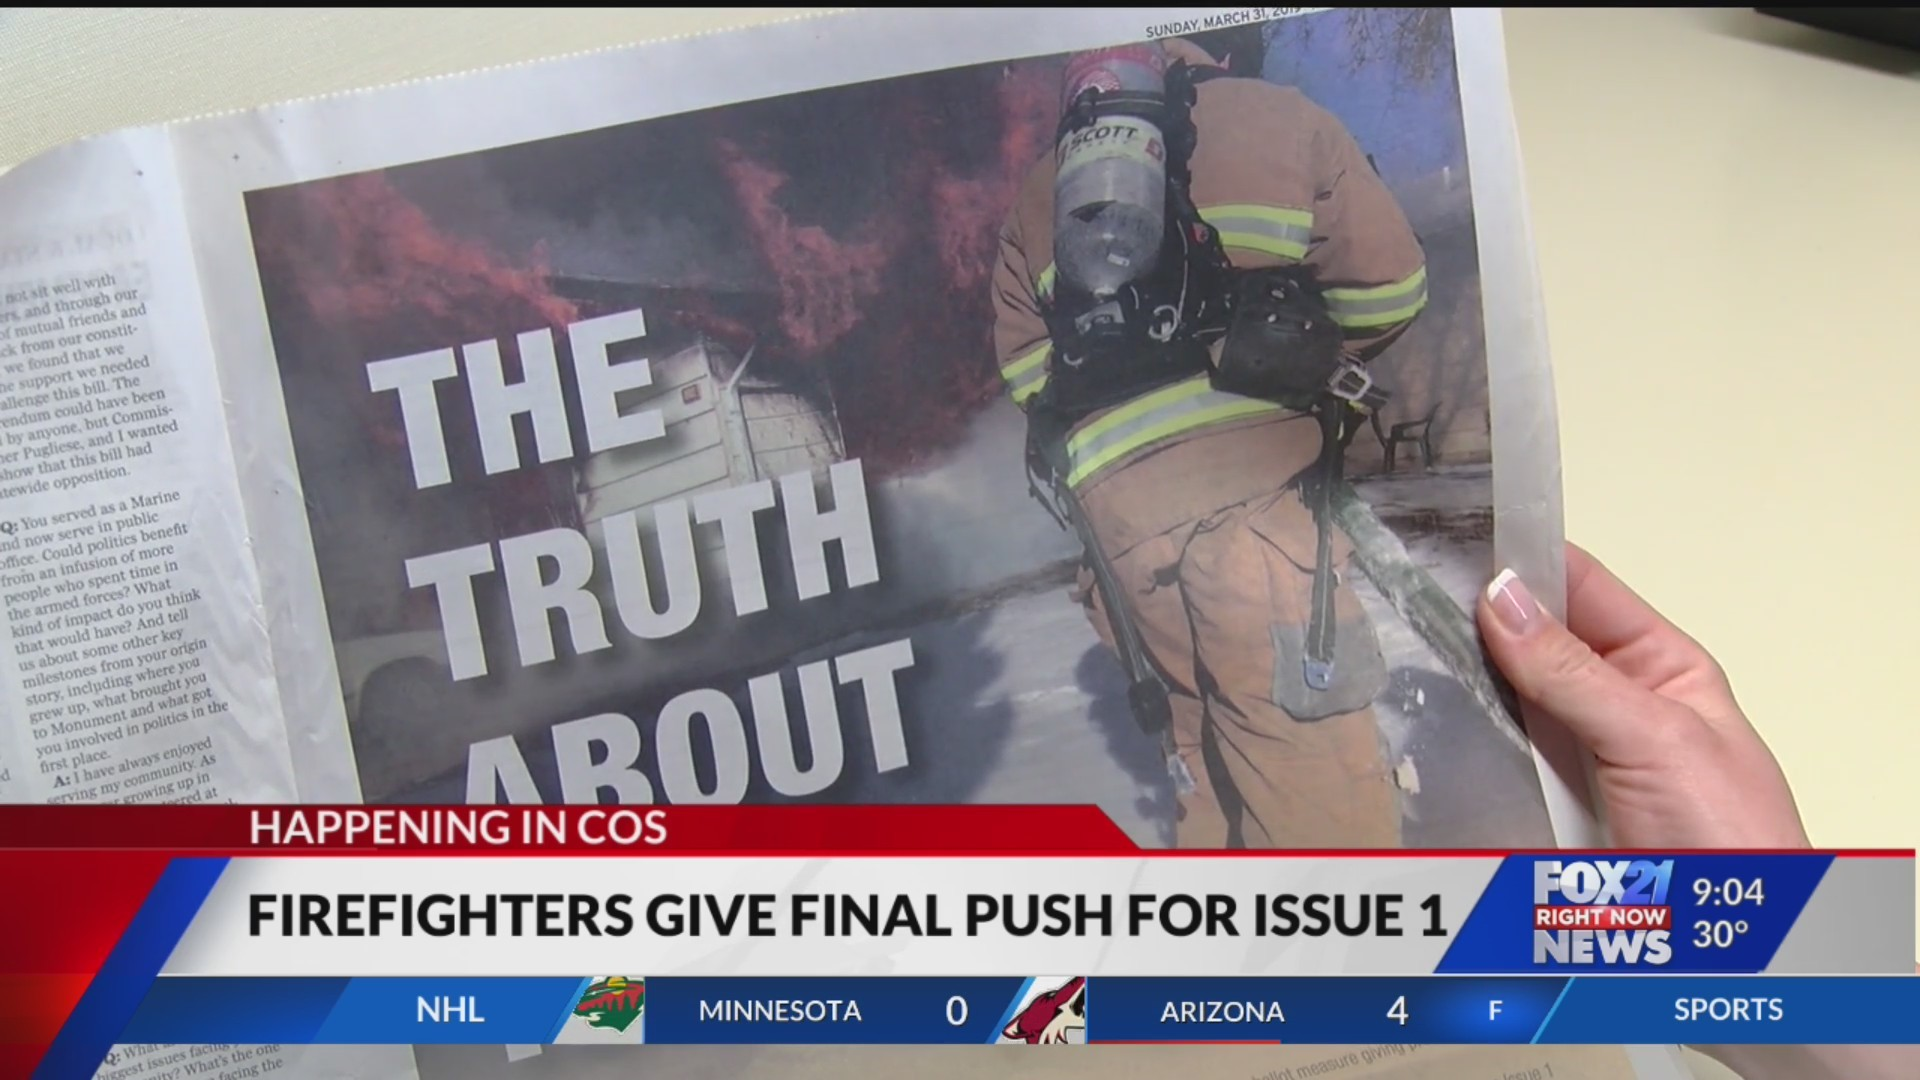 Firefighters give final push to issue one campaign